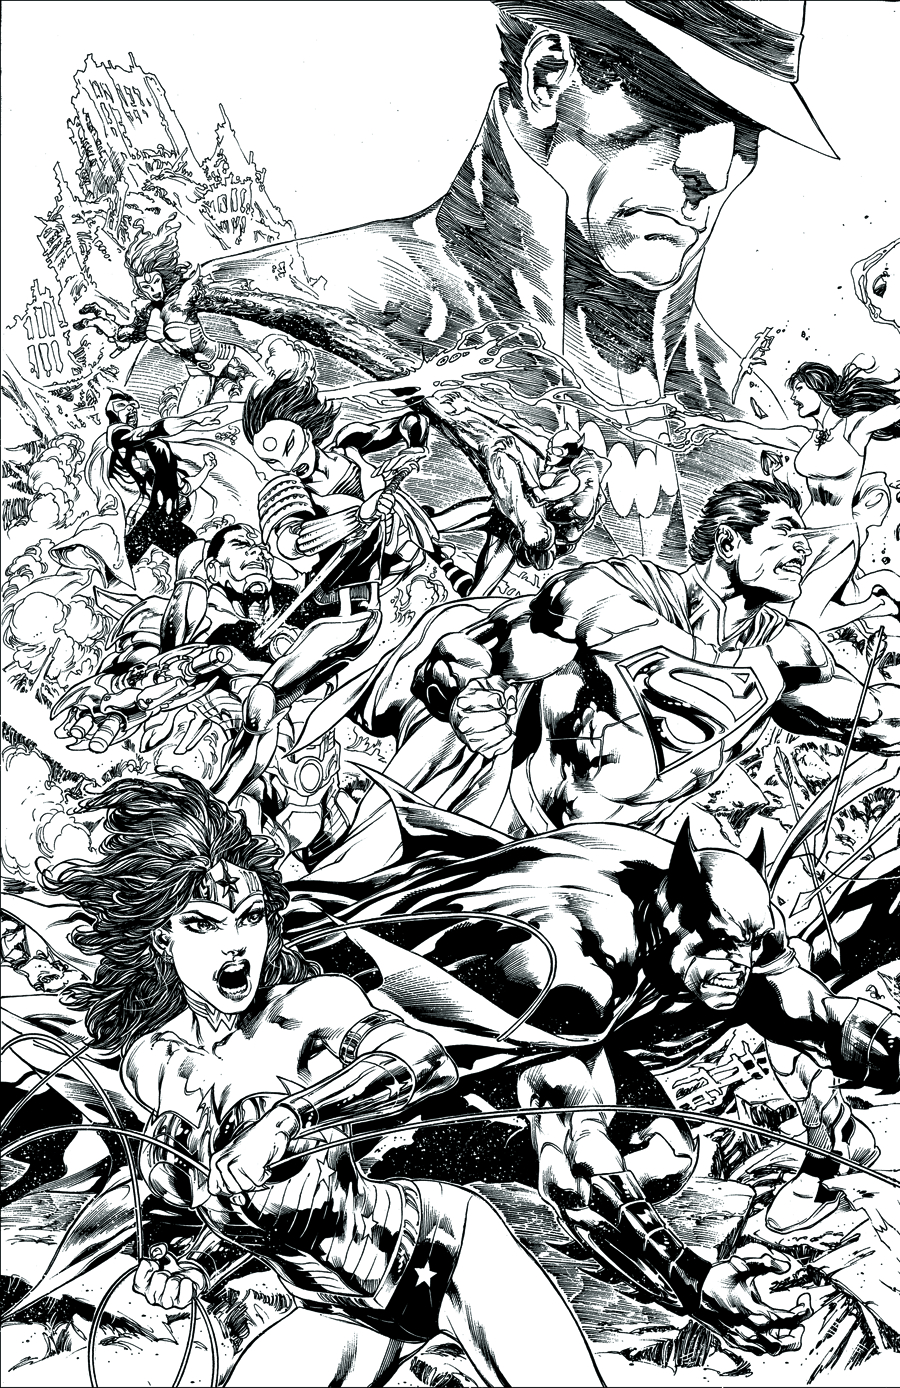 JUSTICE LEAGUE TRINITY WAR DIRECTORS CUT #1